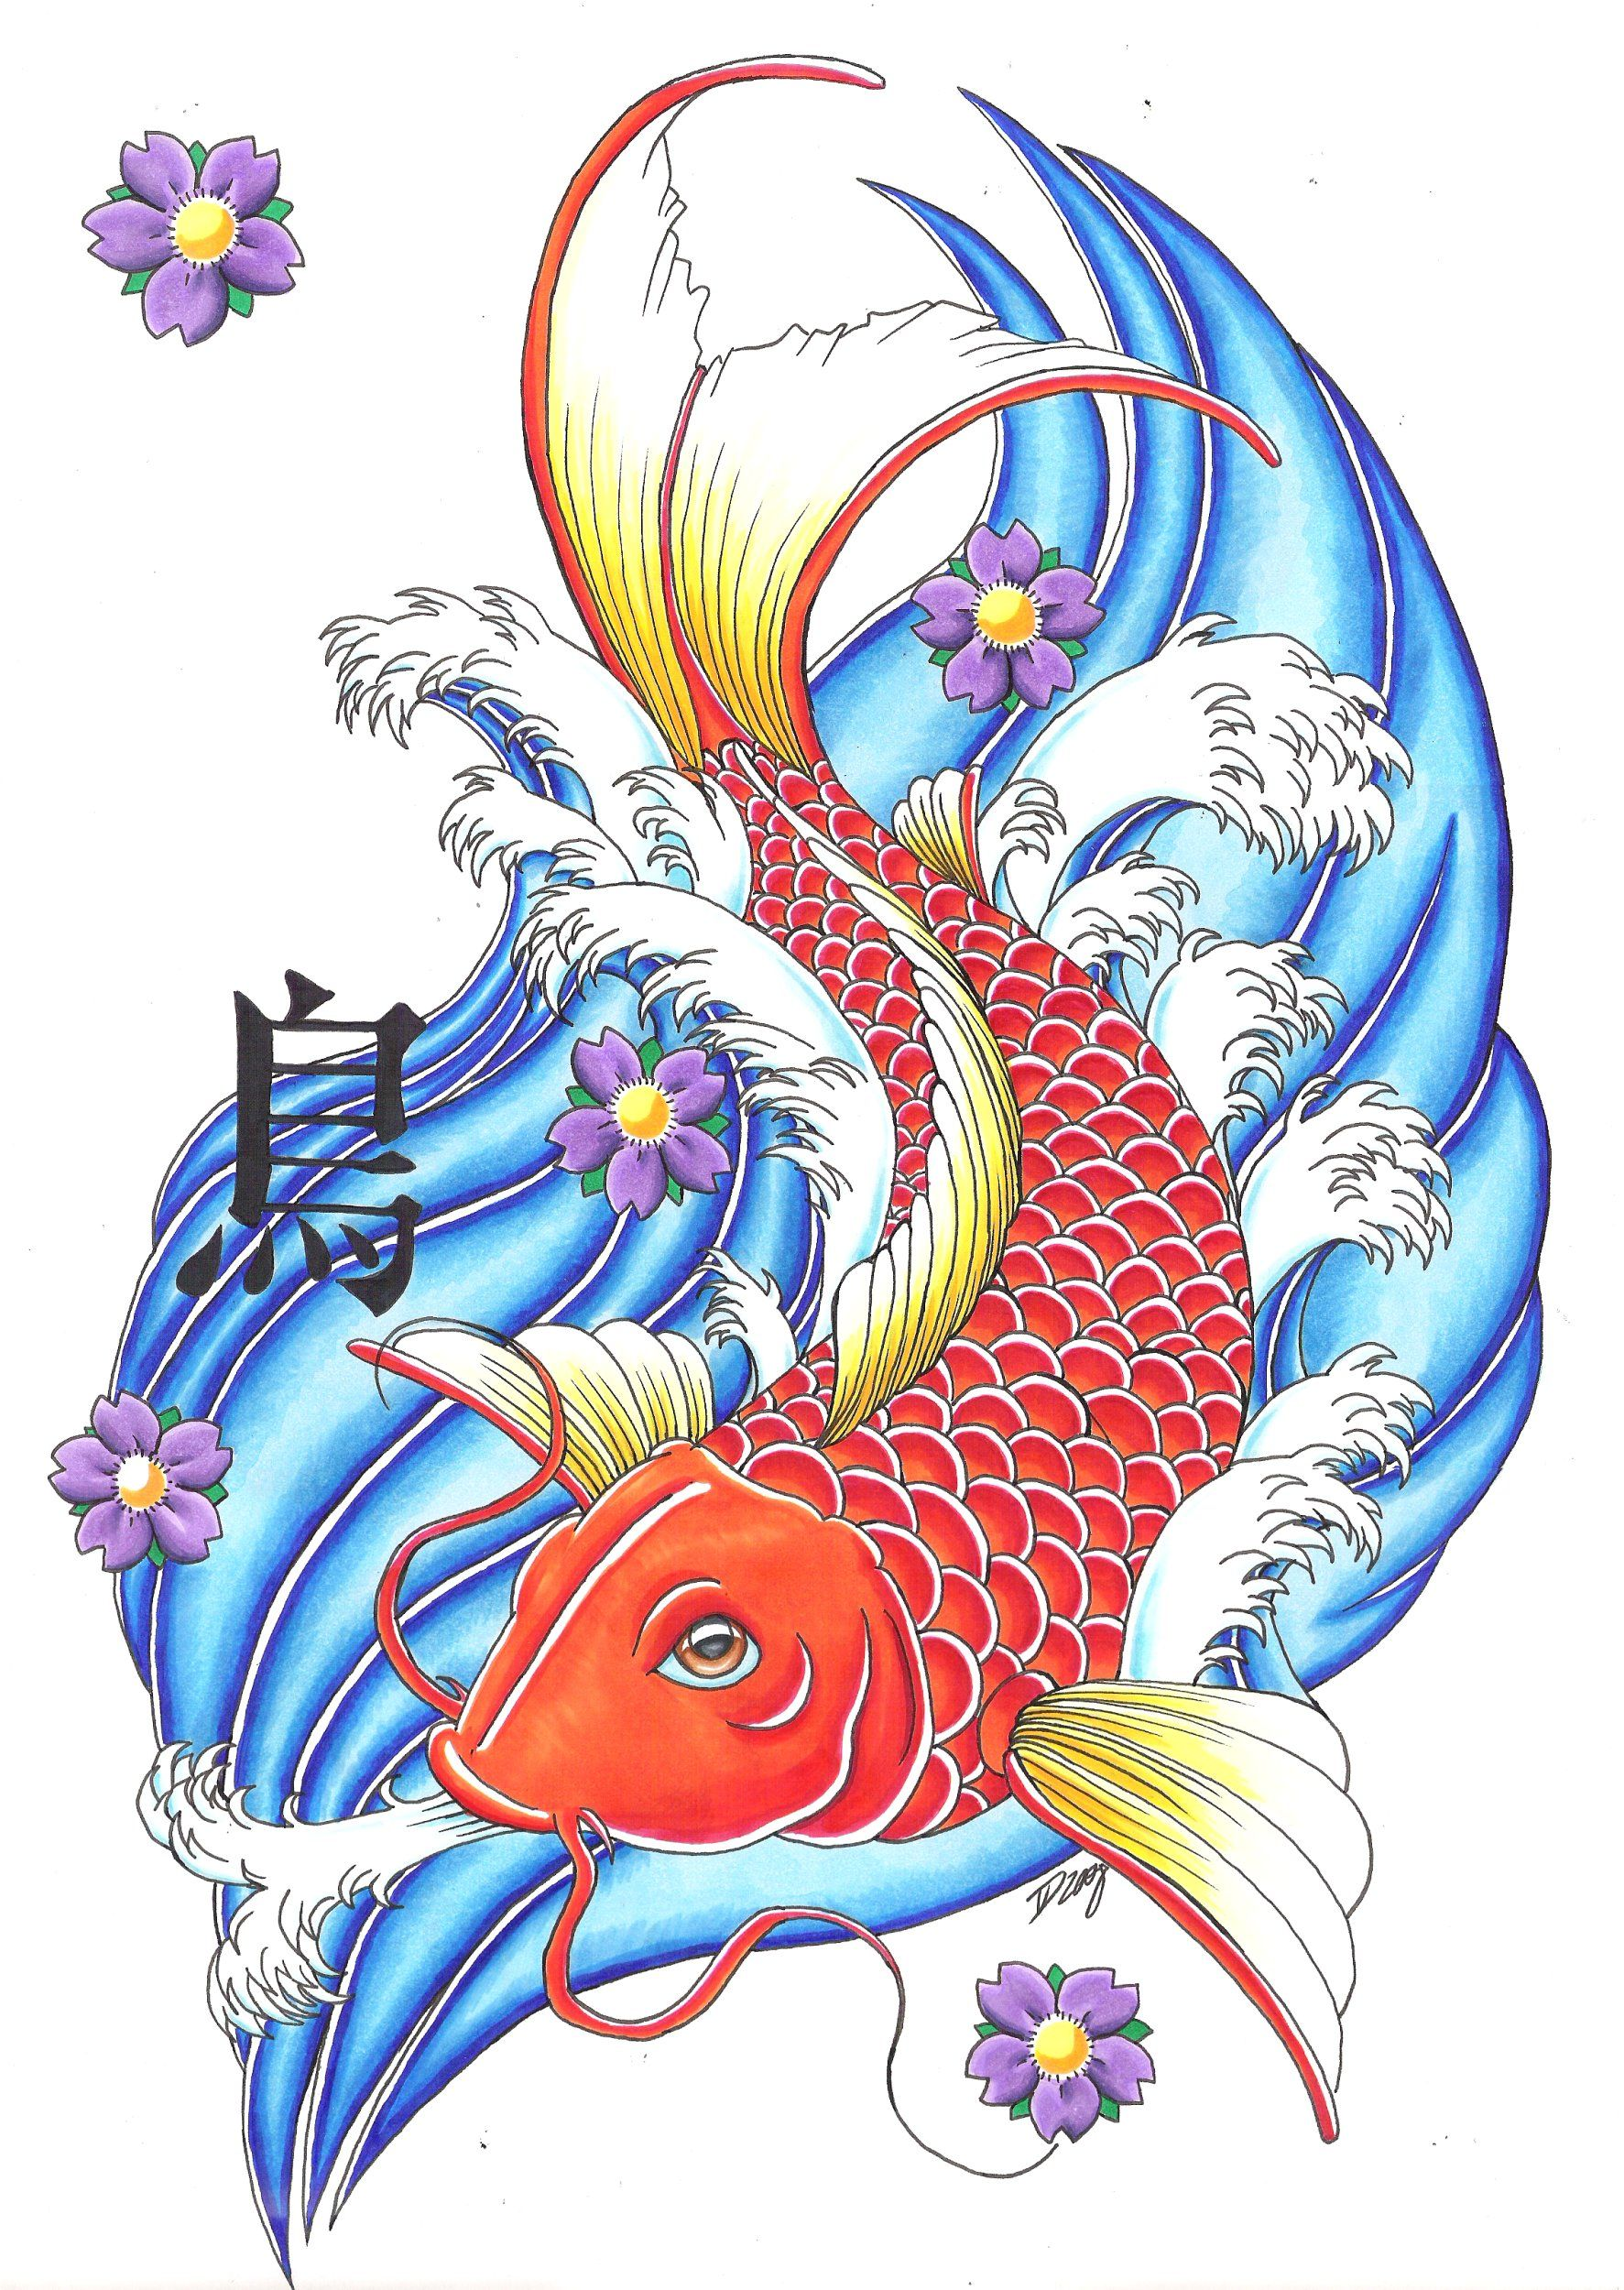 Tattoos Designs Japanese Koi Fish Tattoos Meaning Koi Fish